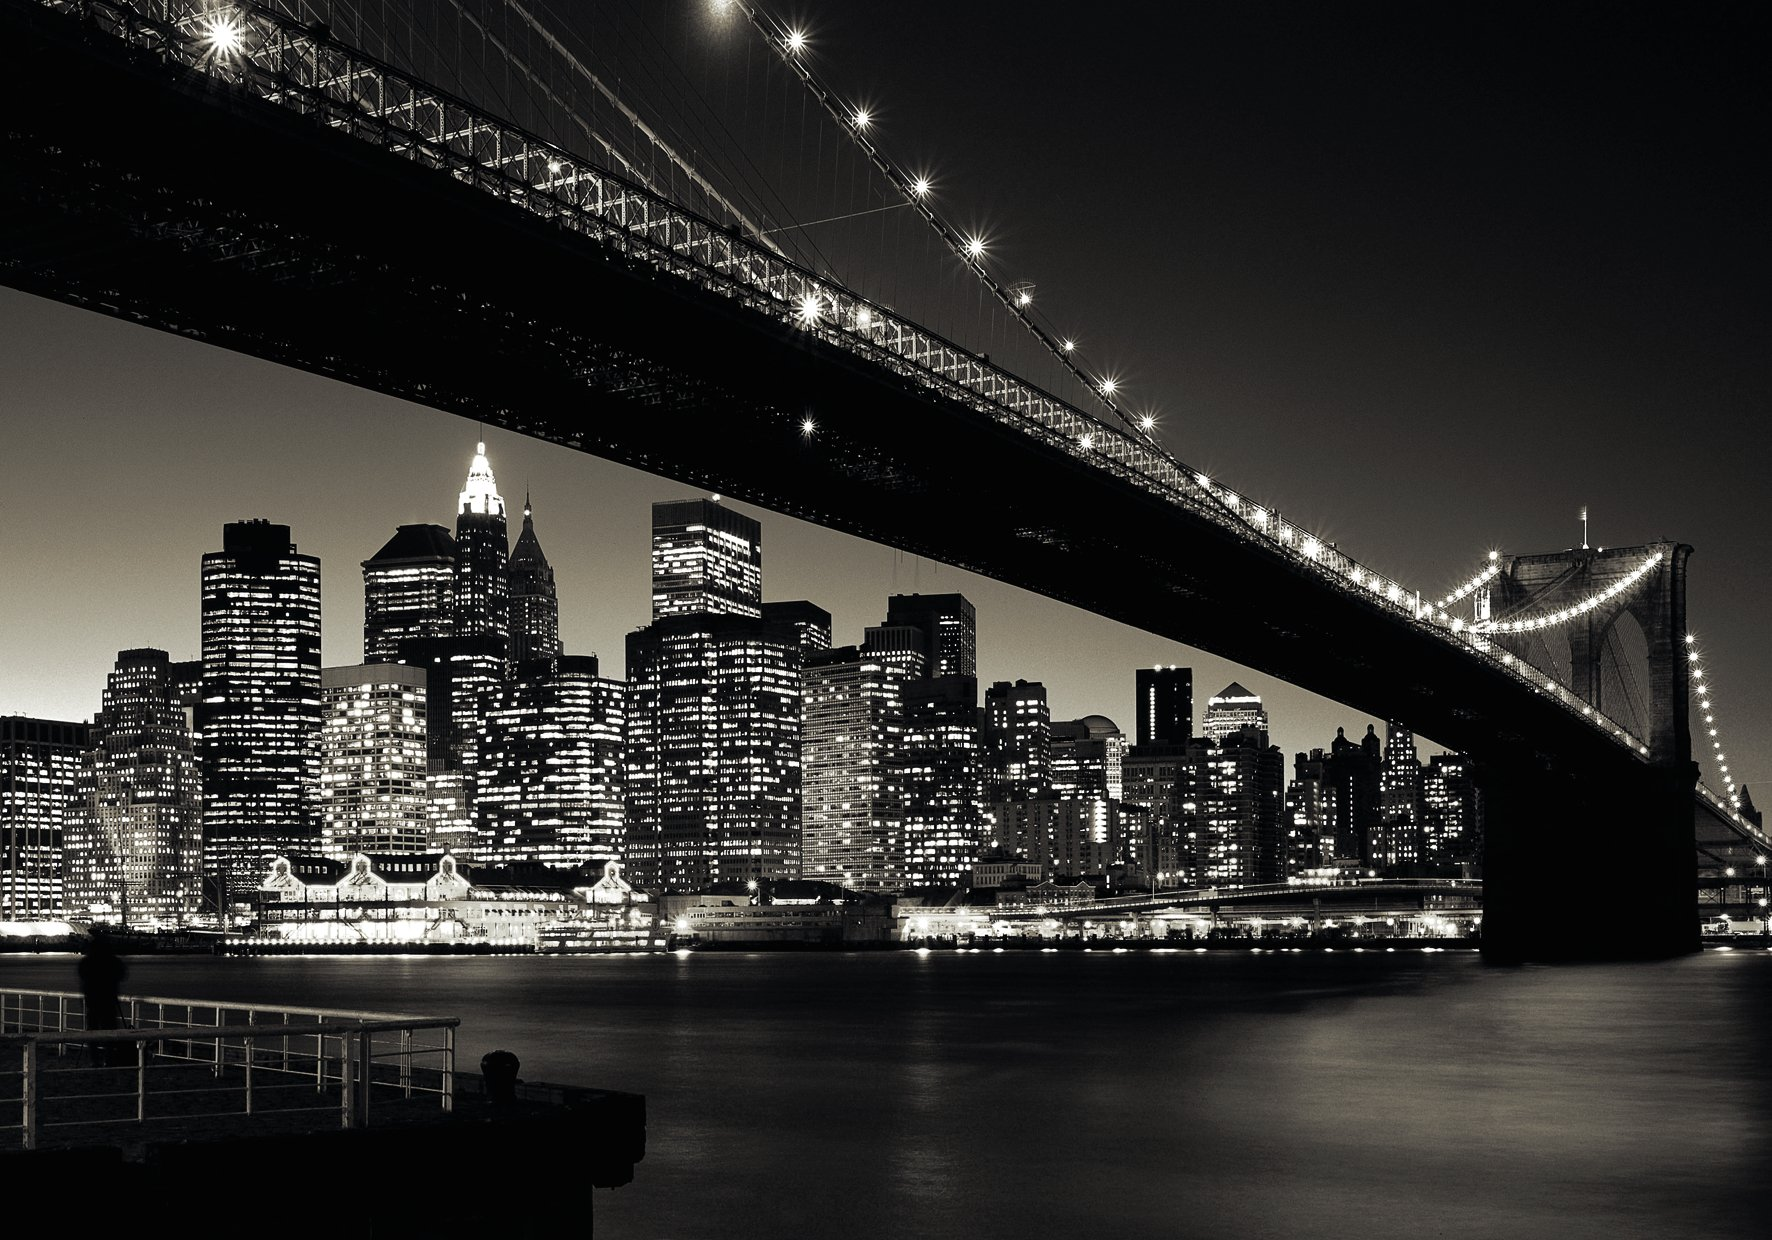 E285 Wooden Adult Jigsaw 1000 Piece New York City Brooklyn Bridge Scenery Very Challenging Adult and Teen Casual Jigsaw Puzzle Large Size Puzzle